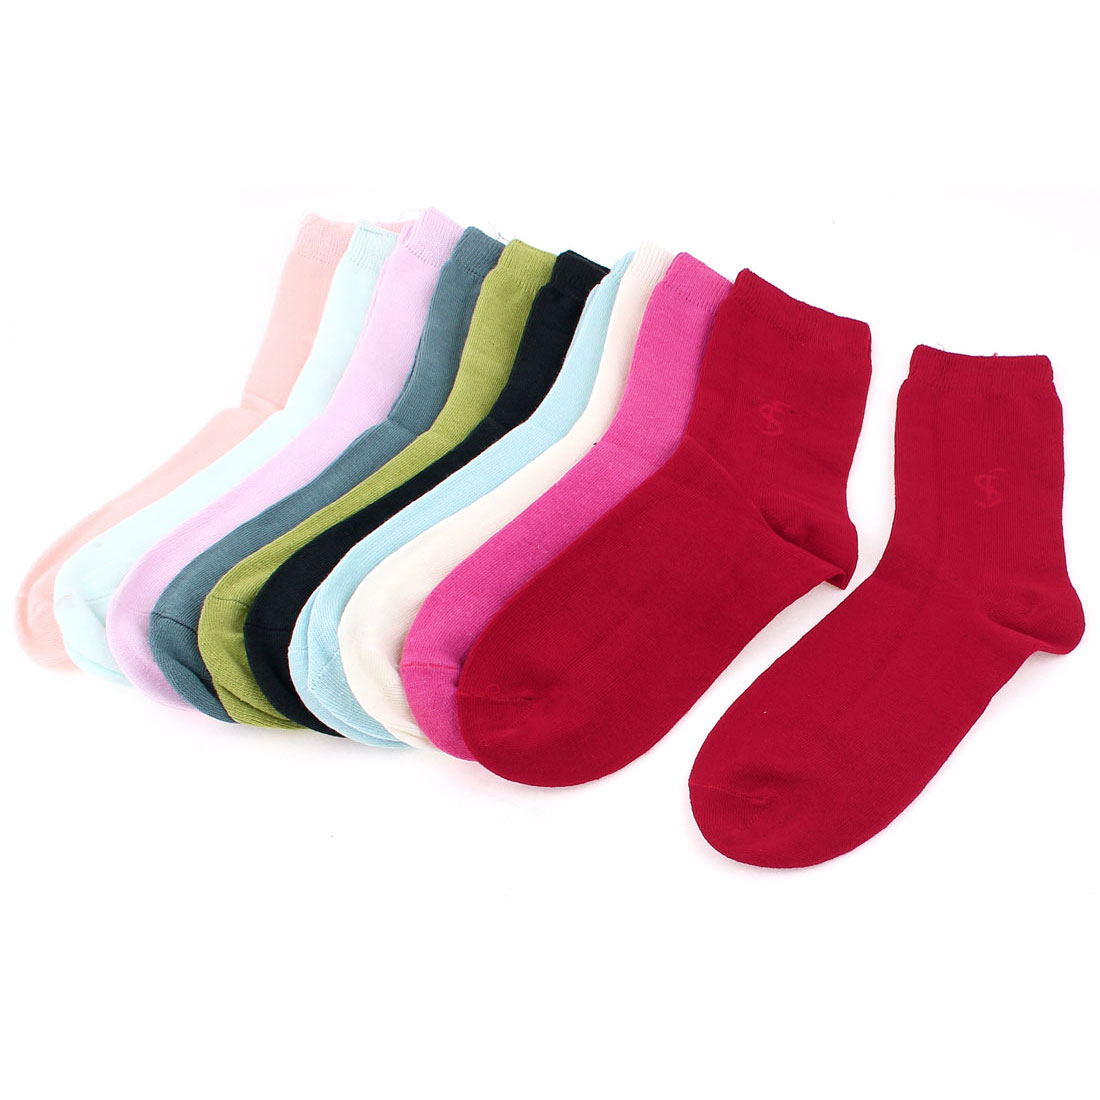 Elastic Cotton Blends Socks 10 Pairs Assorted Color for Children